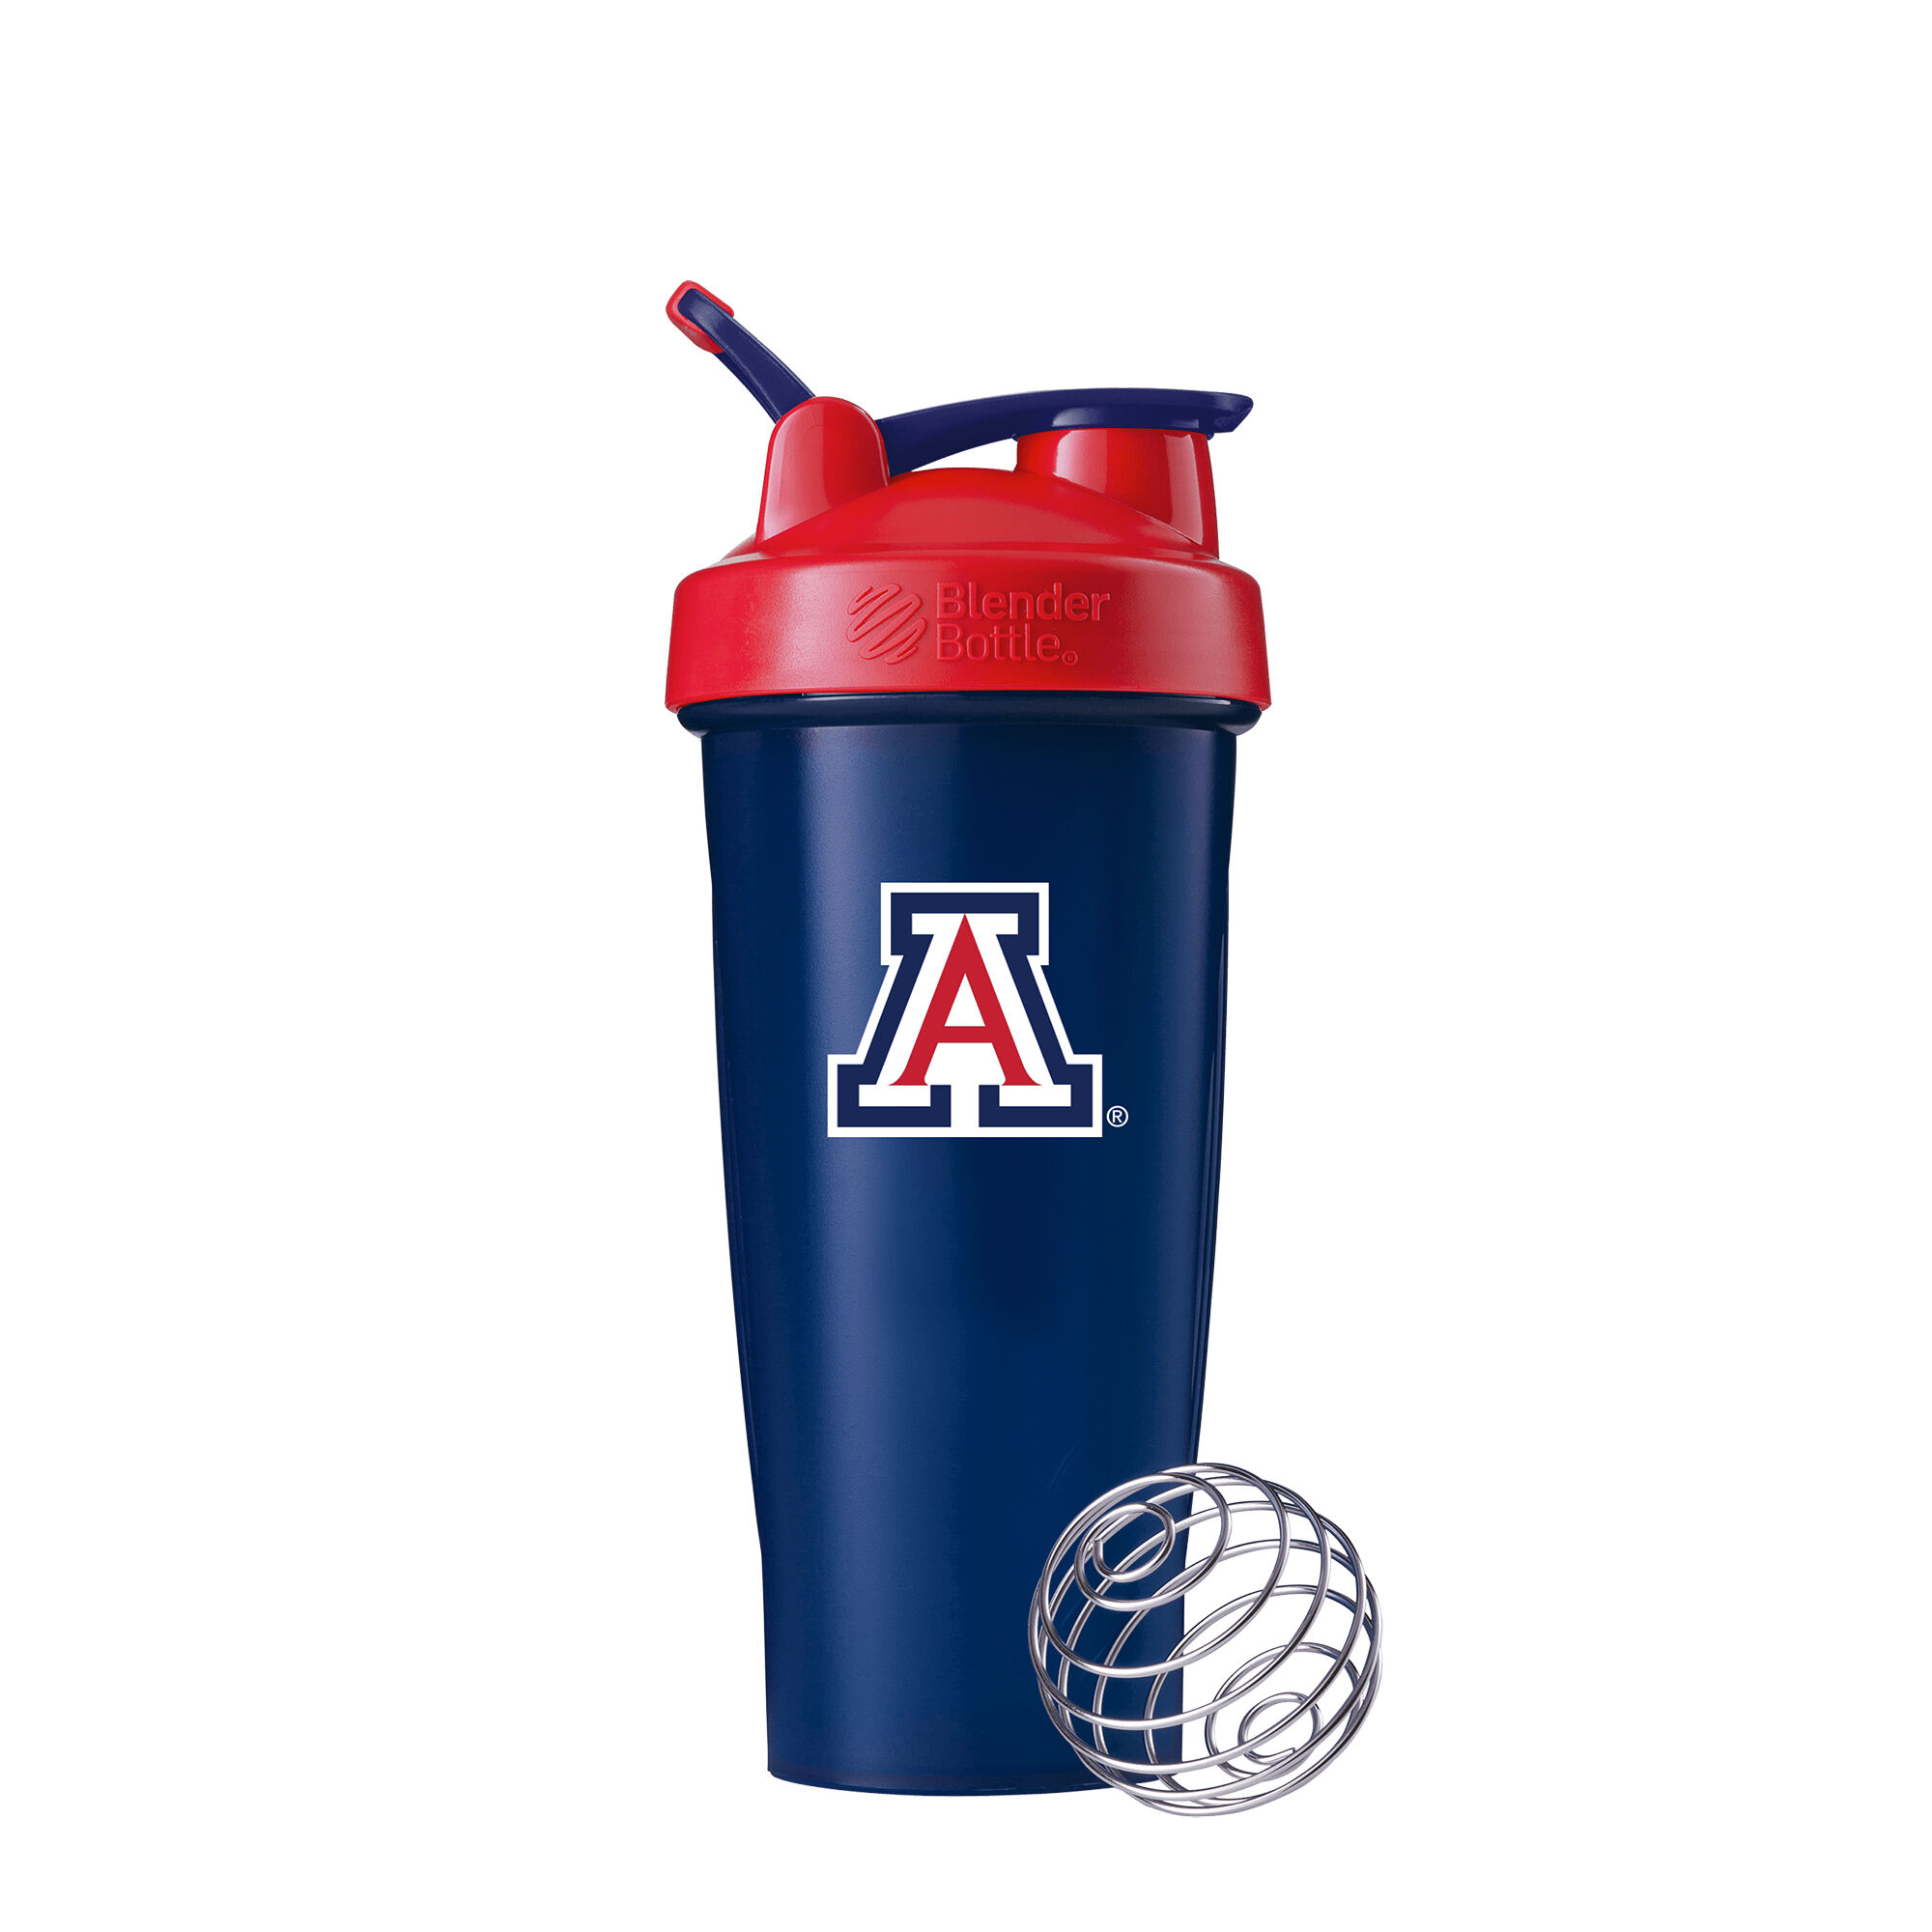 BlenderbottleCollegiate Shaker Bottle Arizona 1 Item(s) Blender BottleMixers Shakers And Bottles